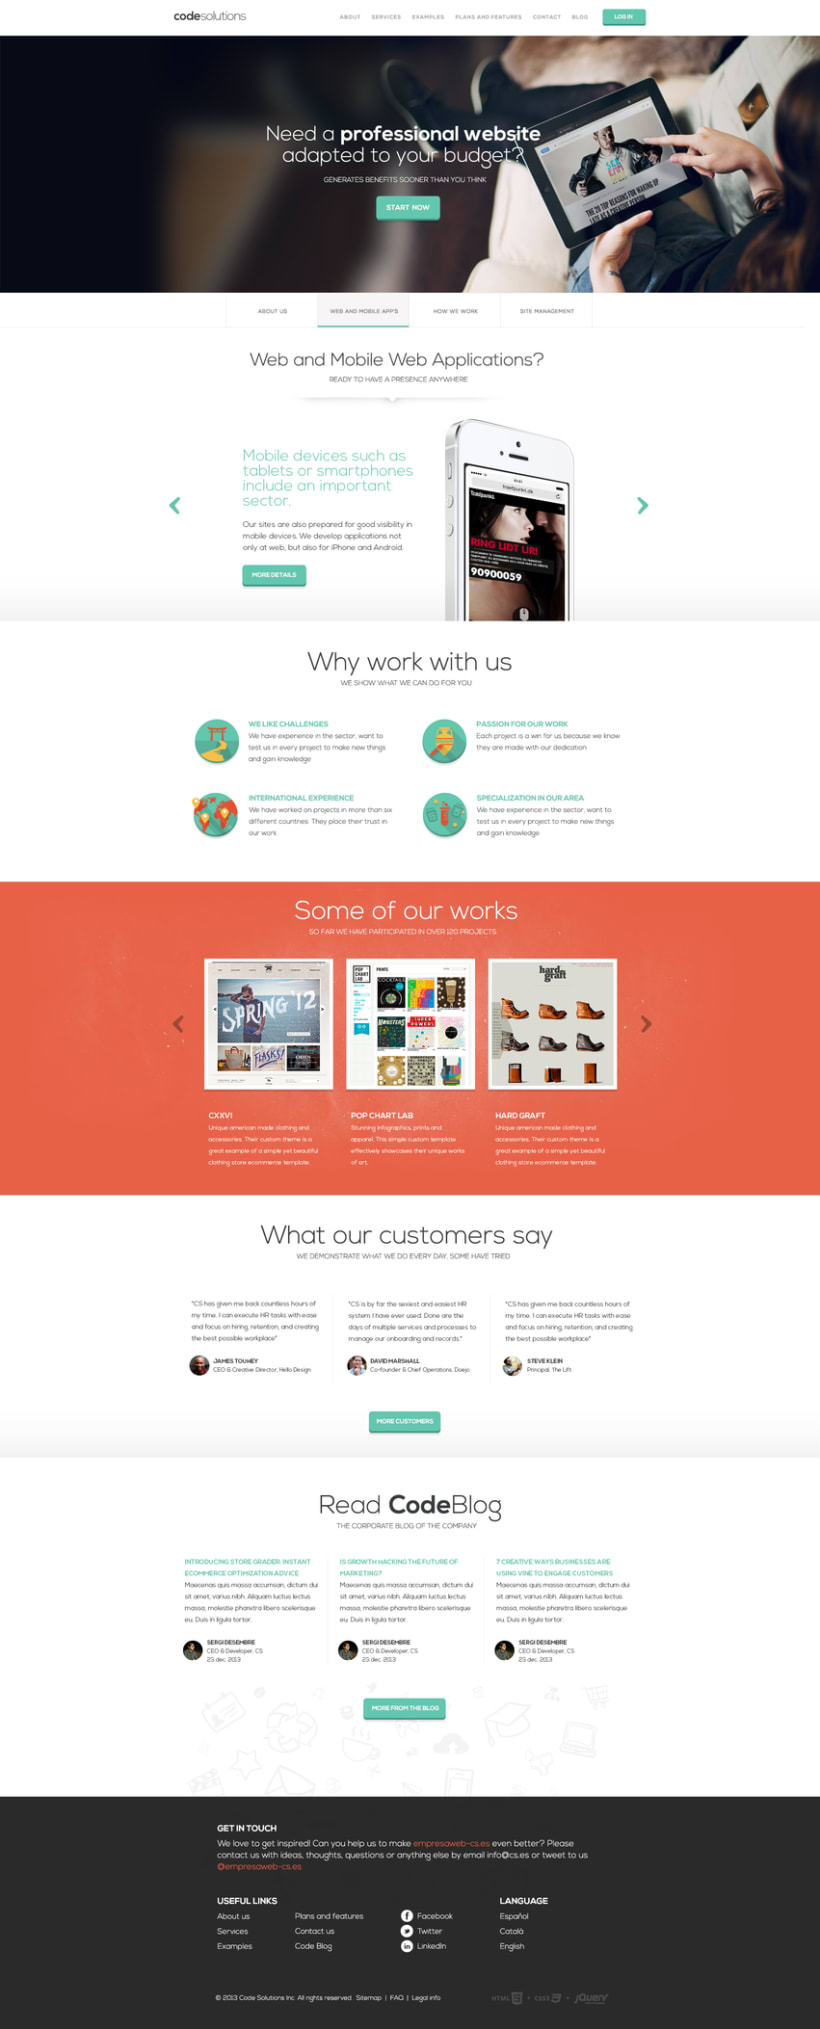 Code Solutions website design (Spain) -1